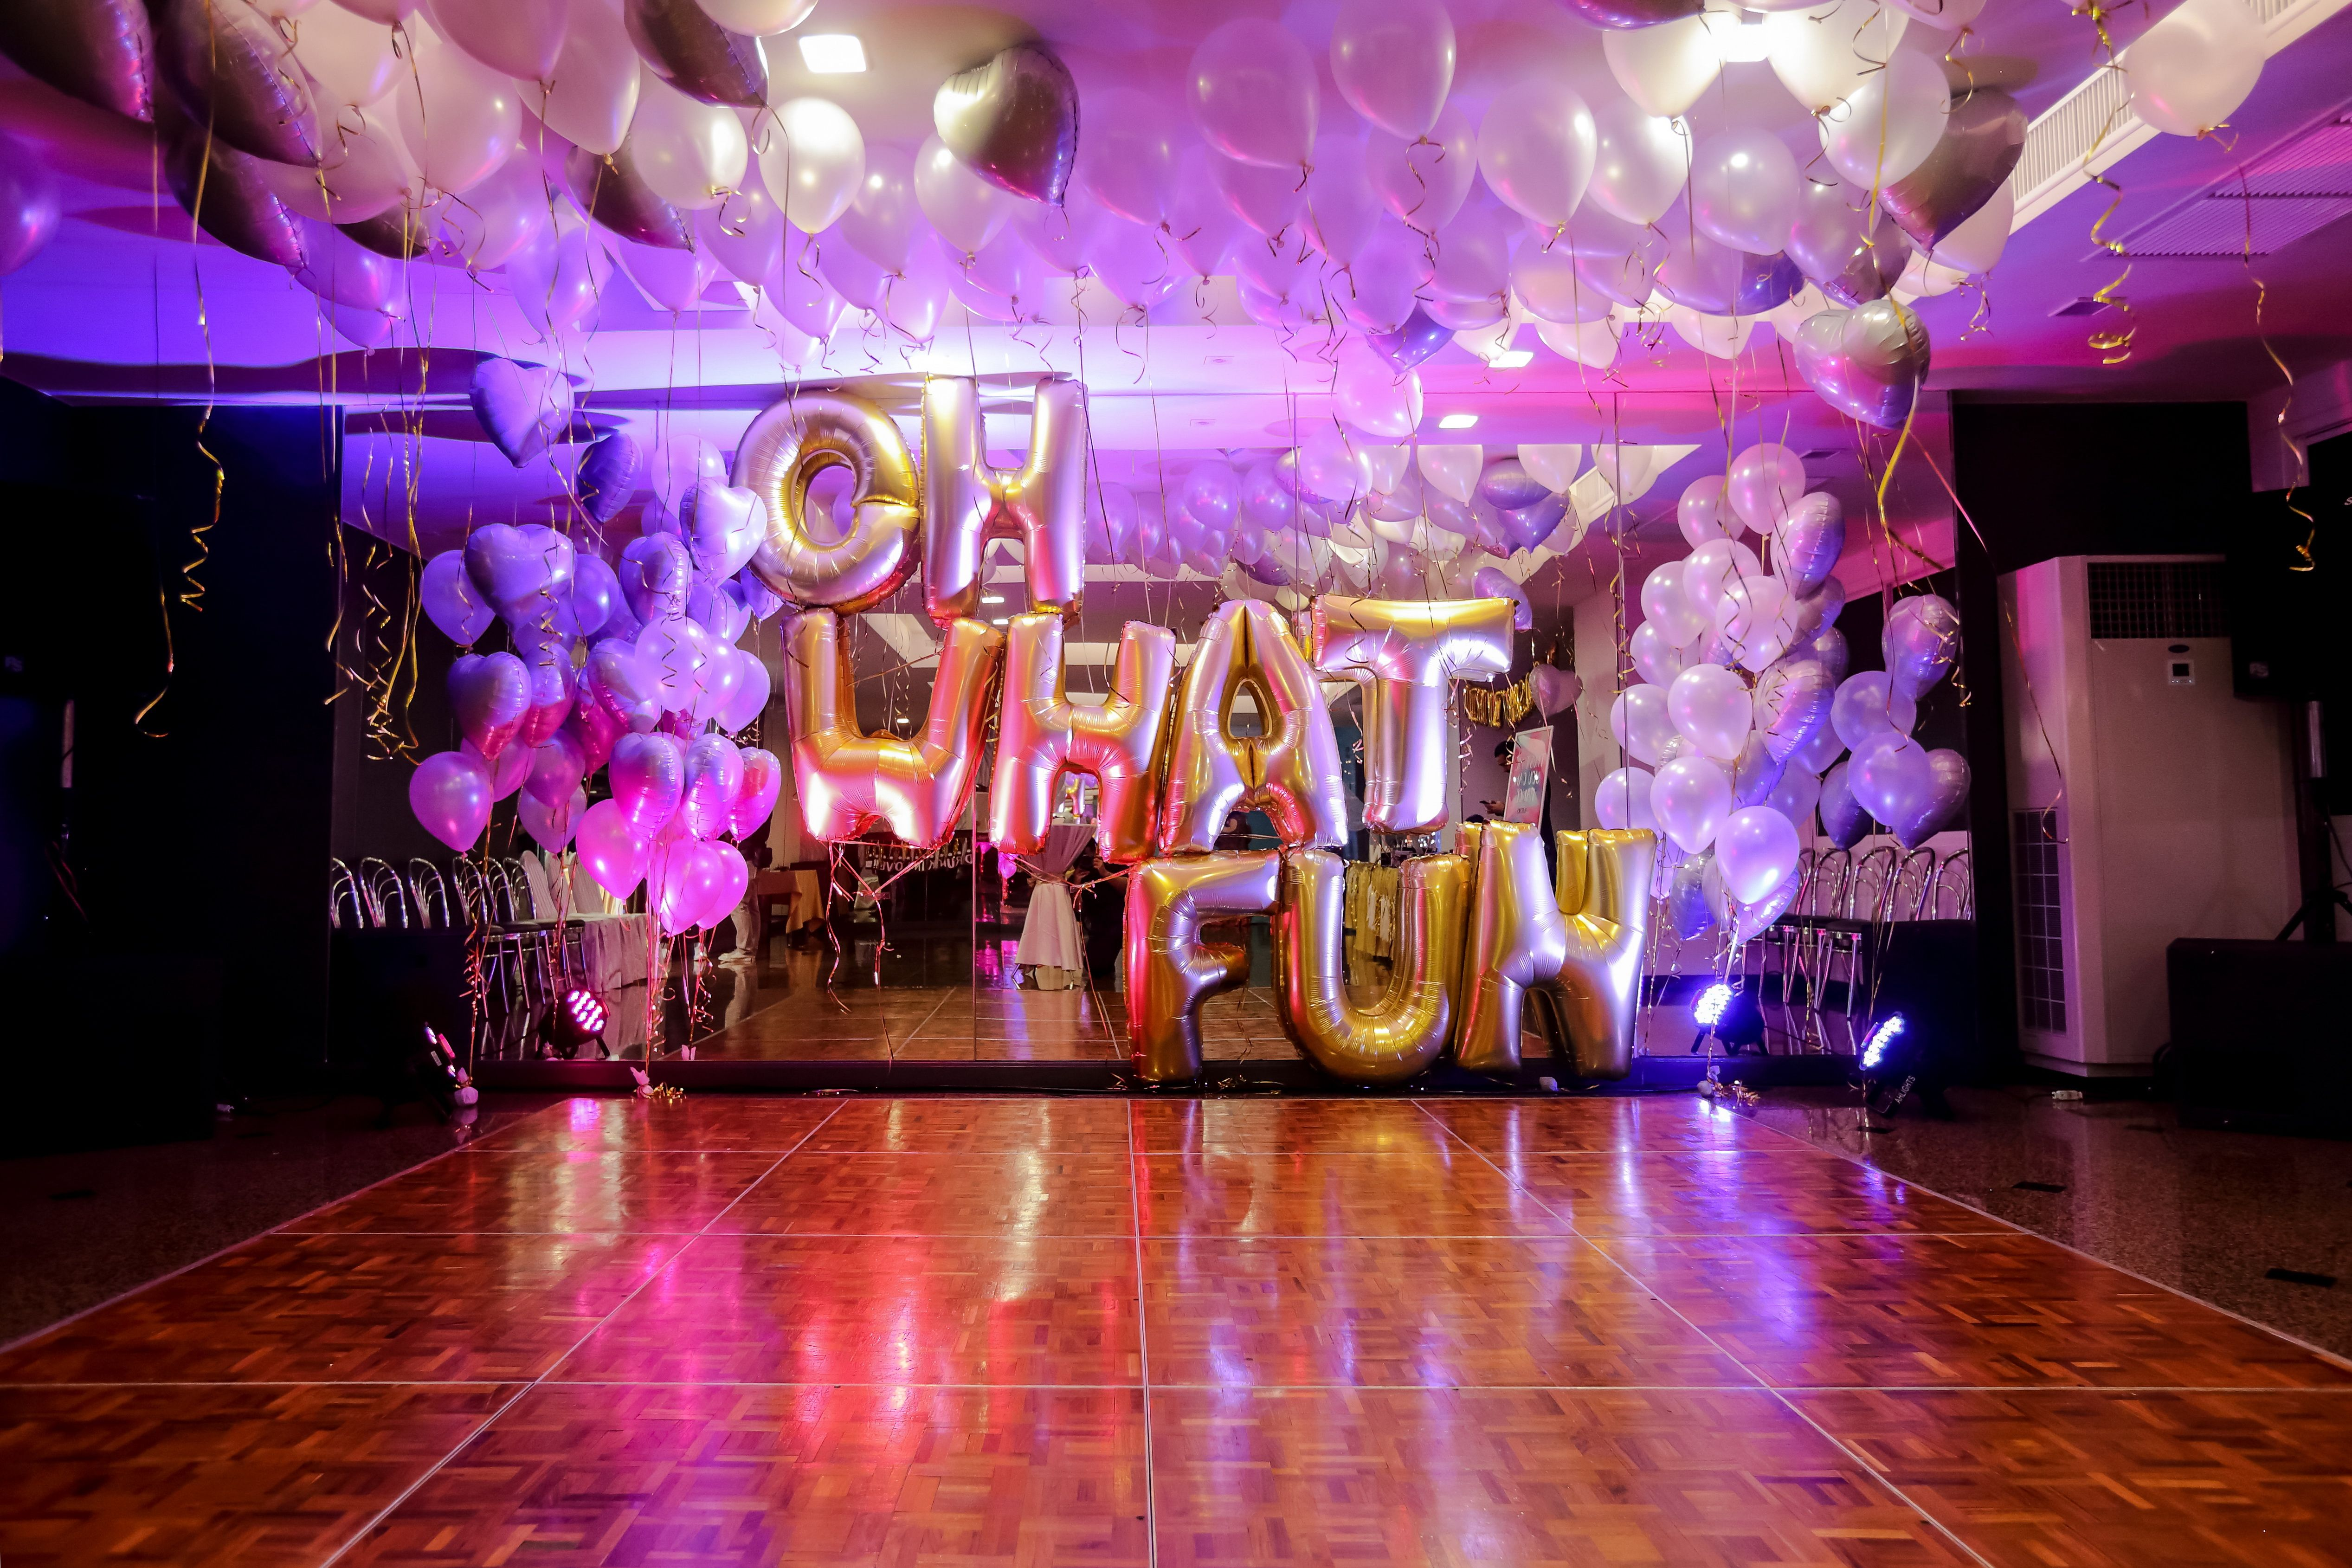 dance floor background and photo back drop together in one go best